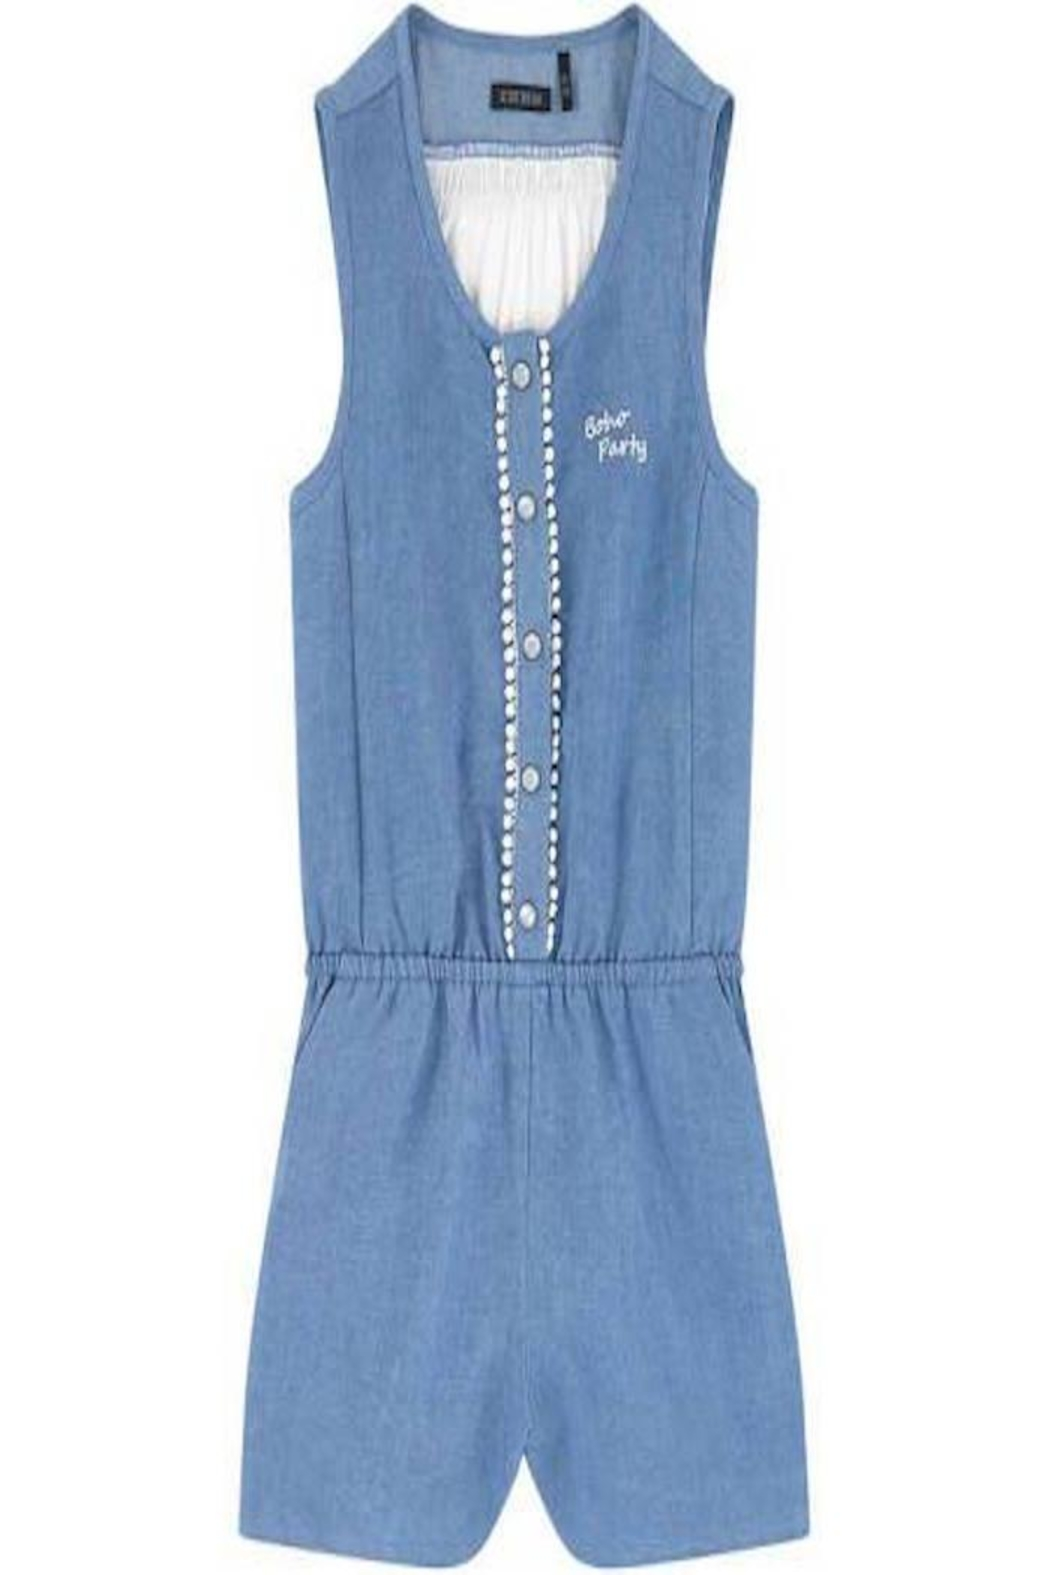 IKKS Boho Party Romper - Main Image